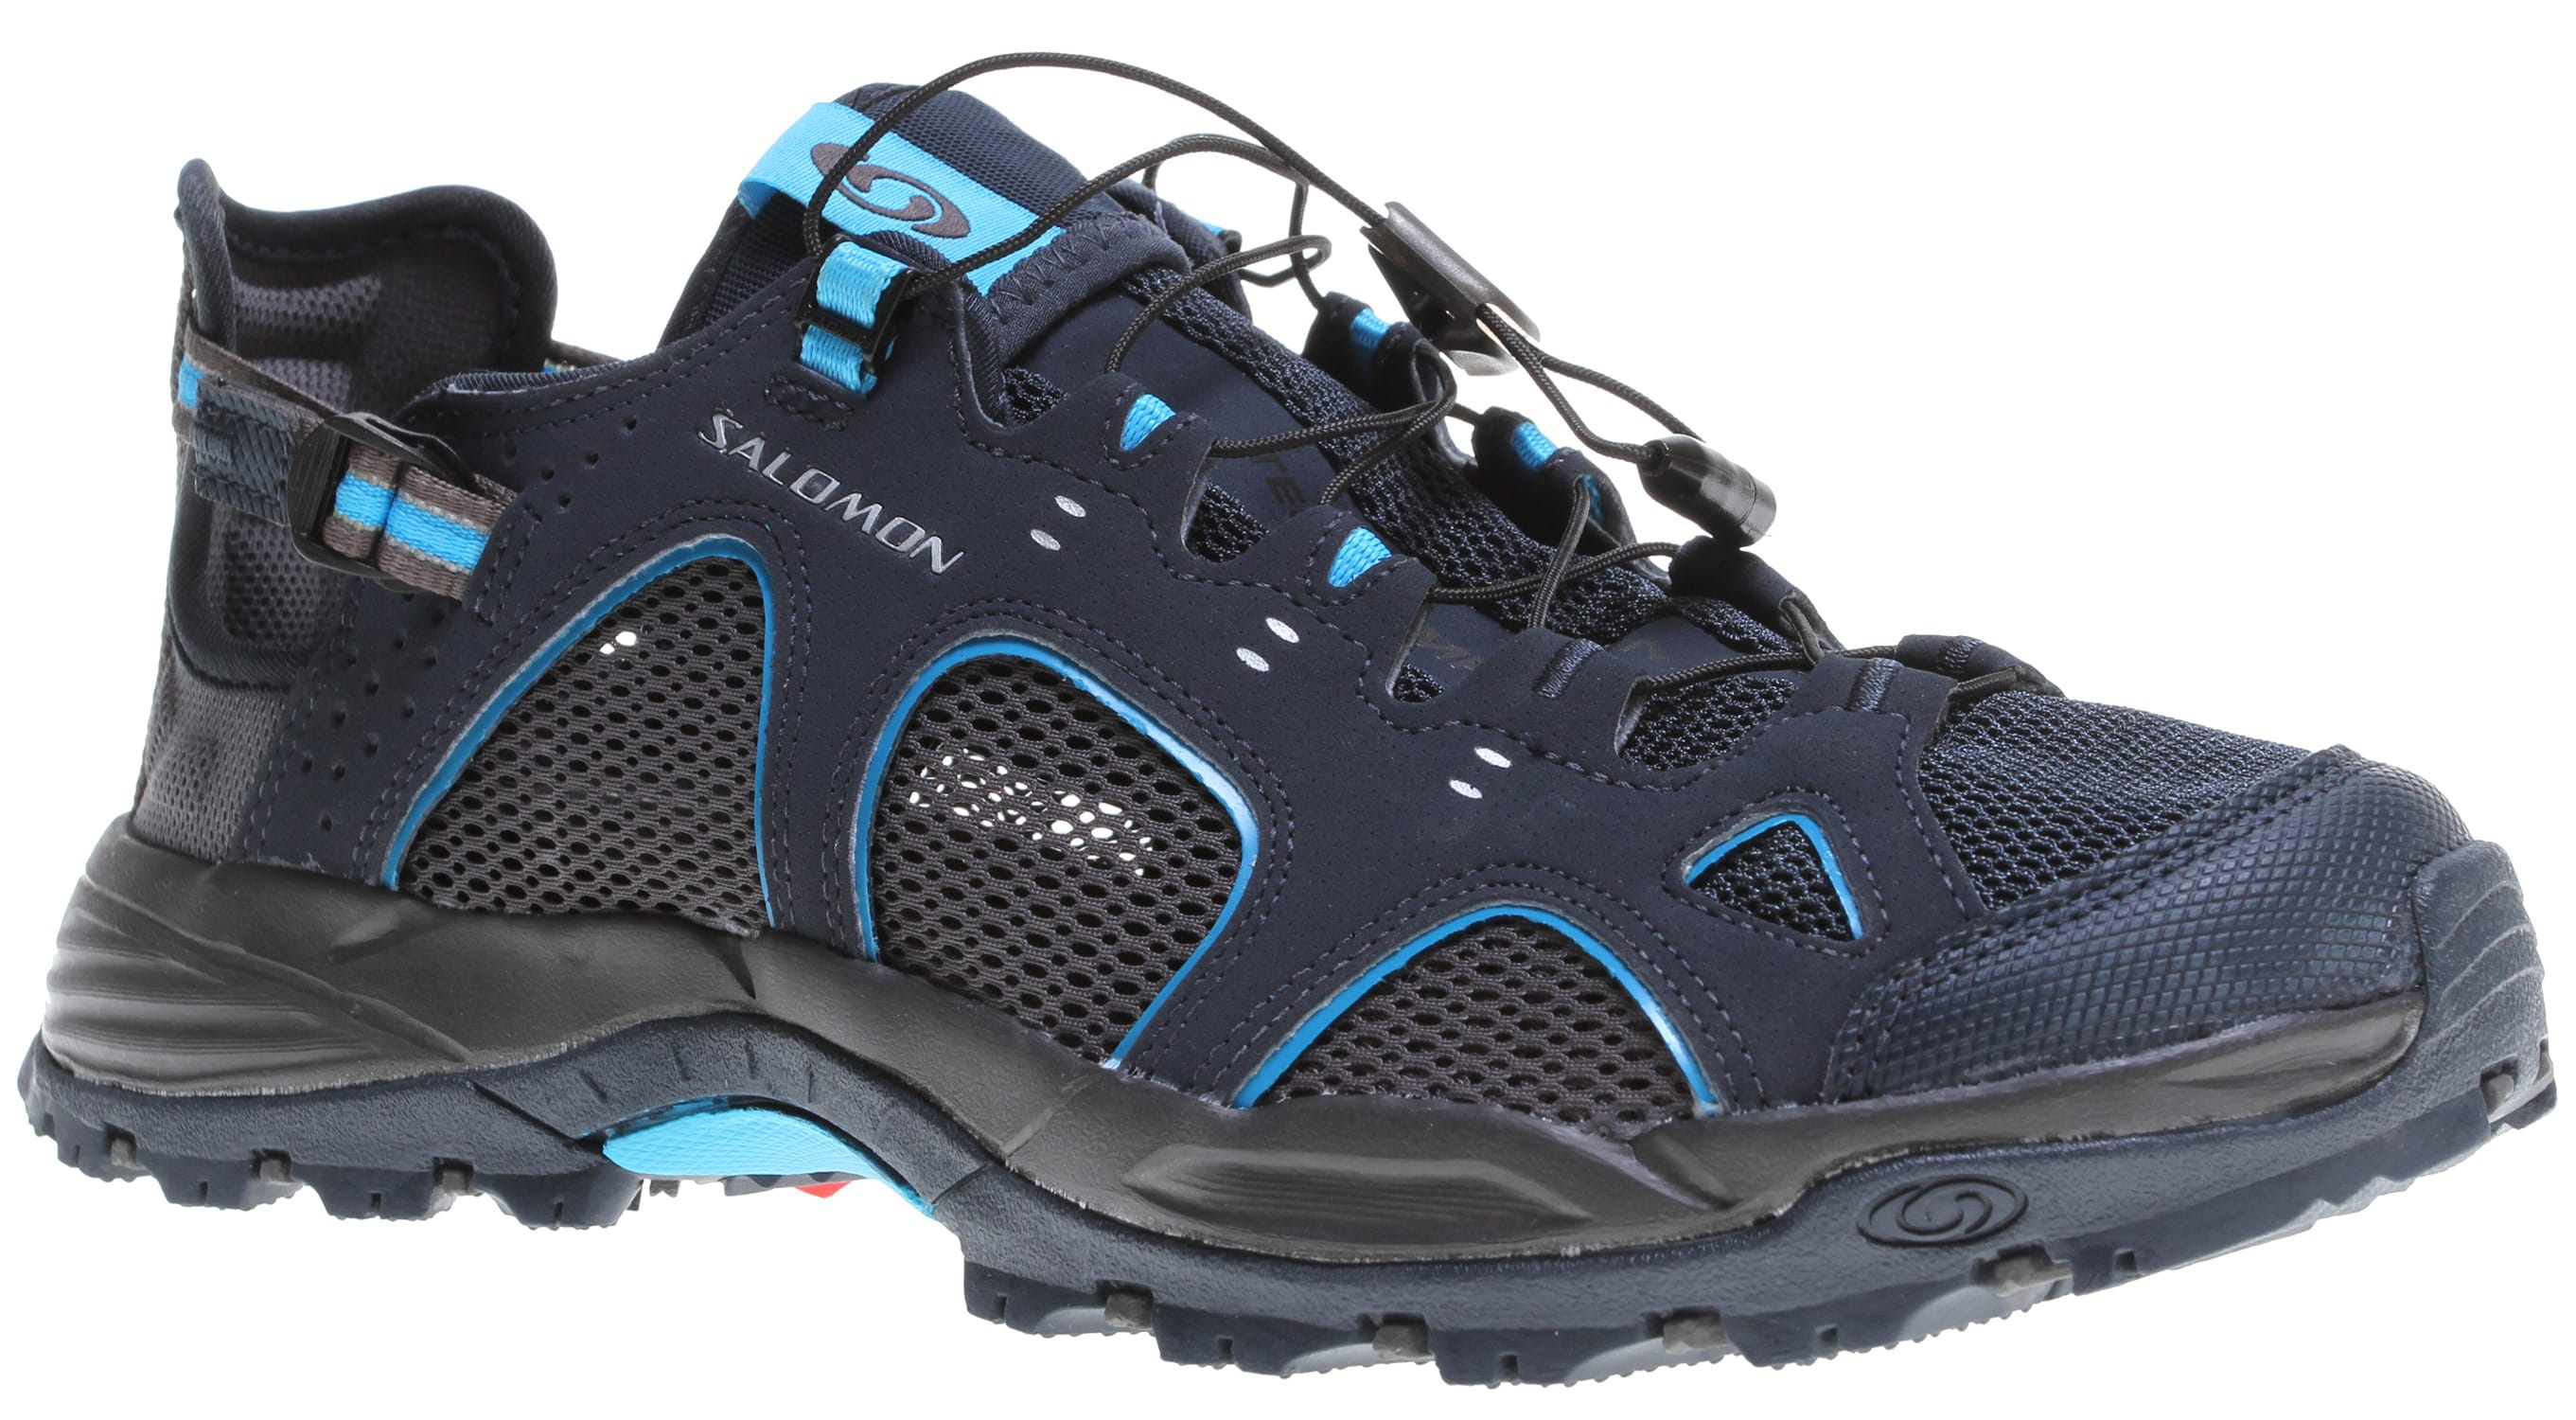 9fc7ca30cc5 Salomon Techamphibian 3 Water Shoes - thumbnail 2